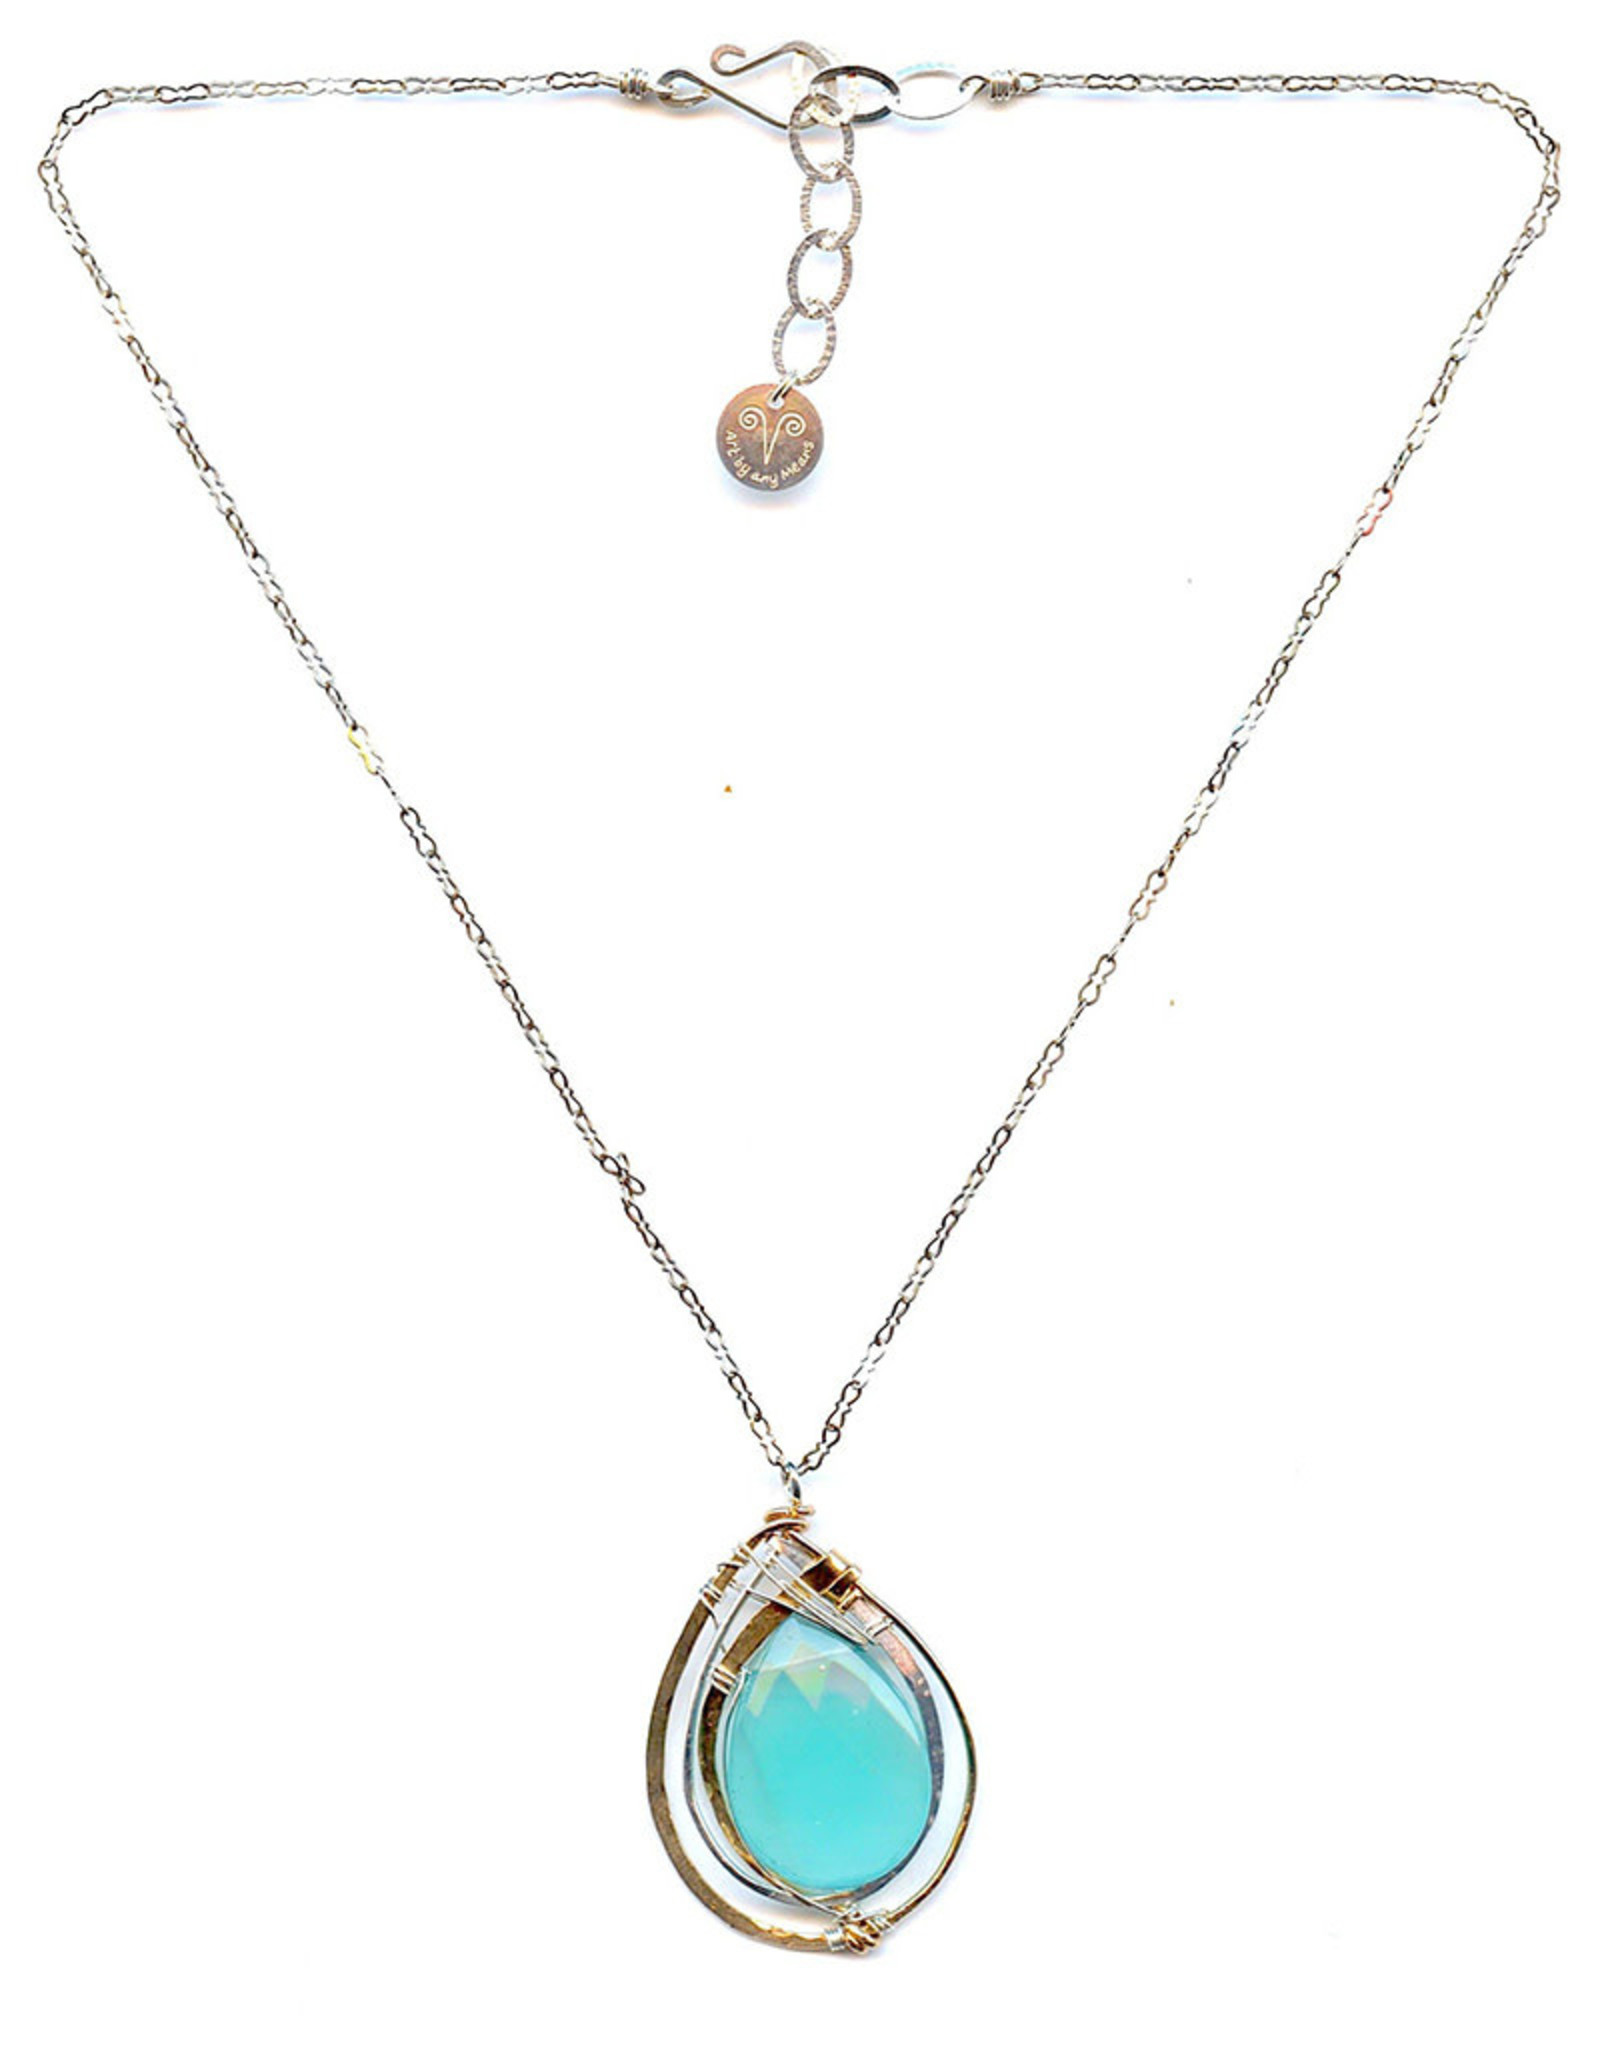 ART BY ANY MEANS RAINDROP PENDANT NECKLACE